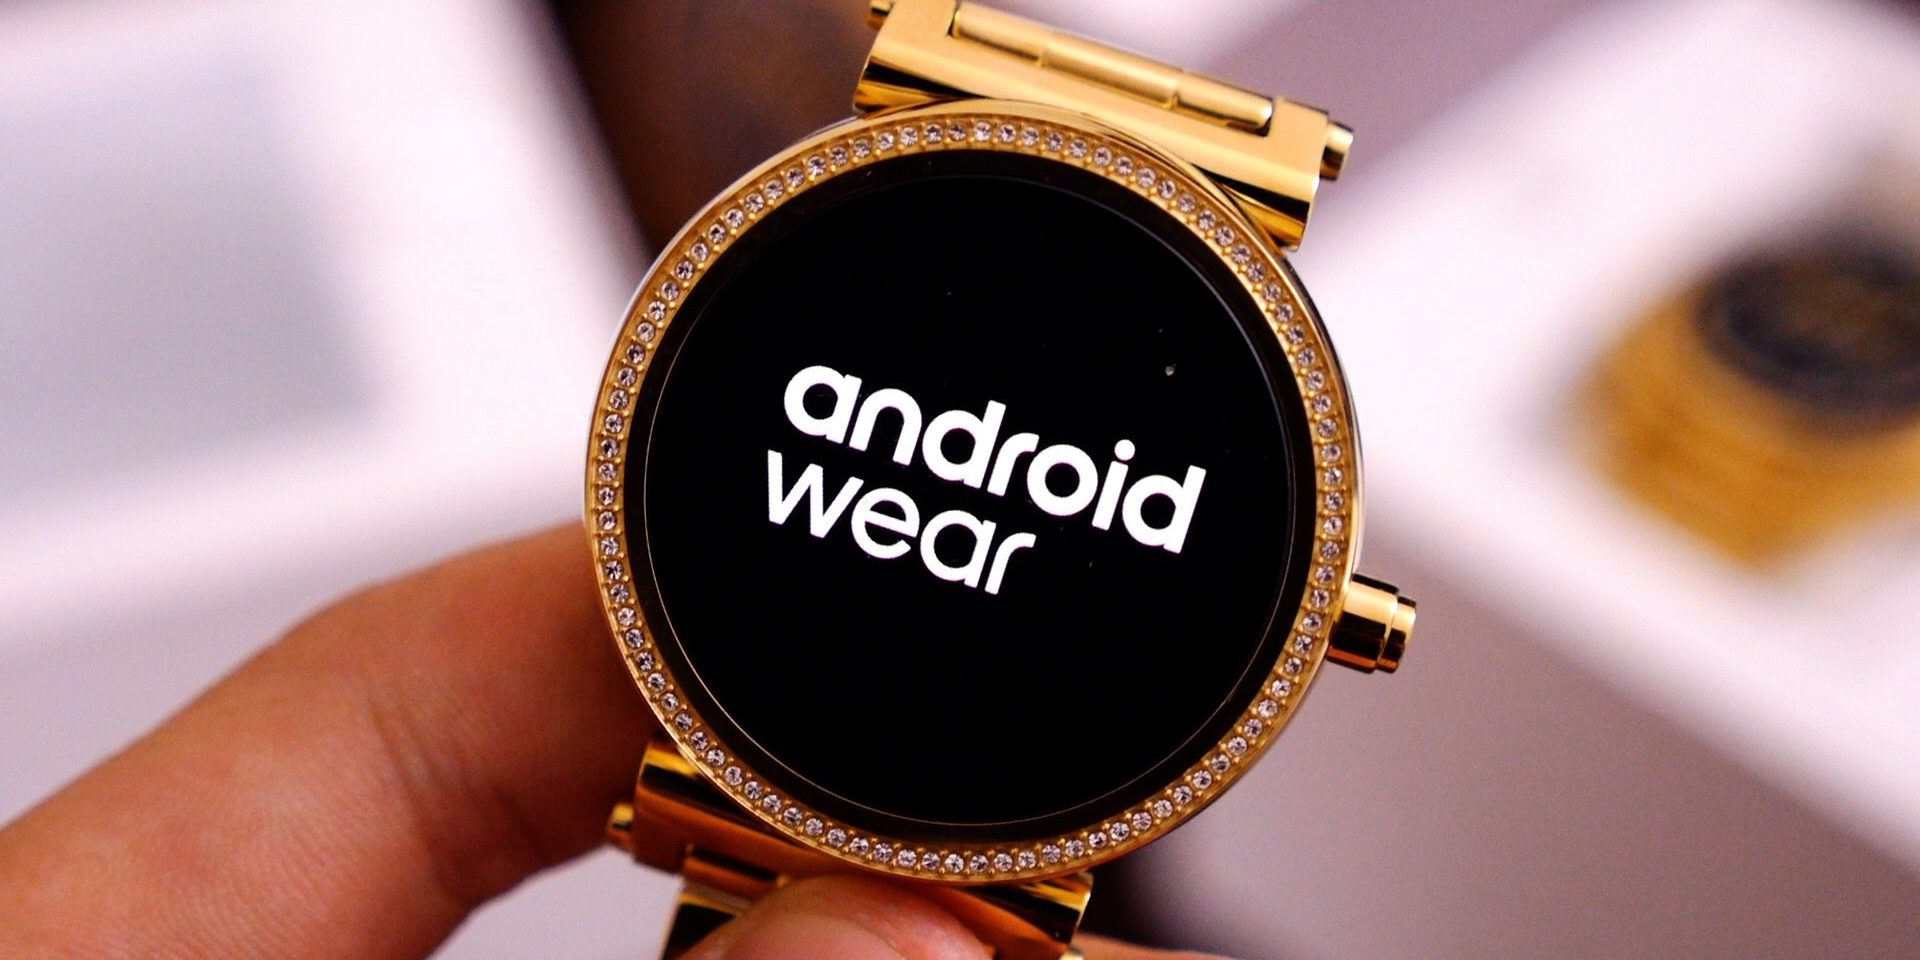 Latest Google app update fixes Android Wear lag caused by 'Ok Google' detection